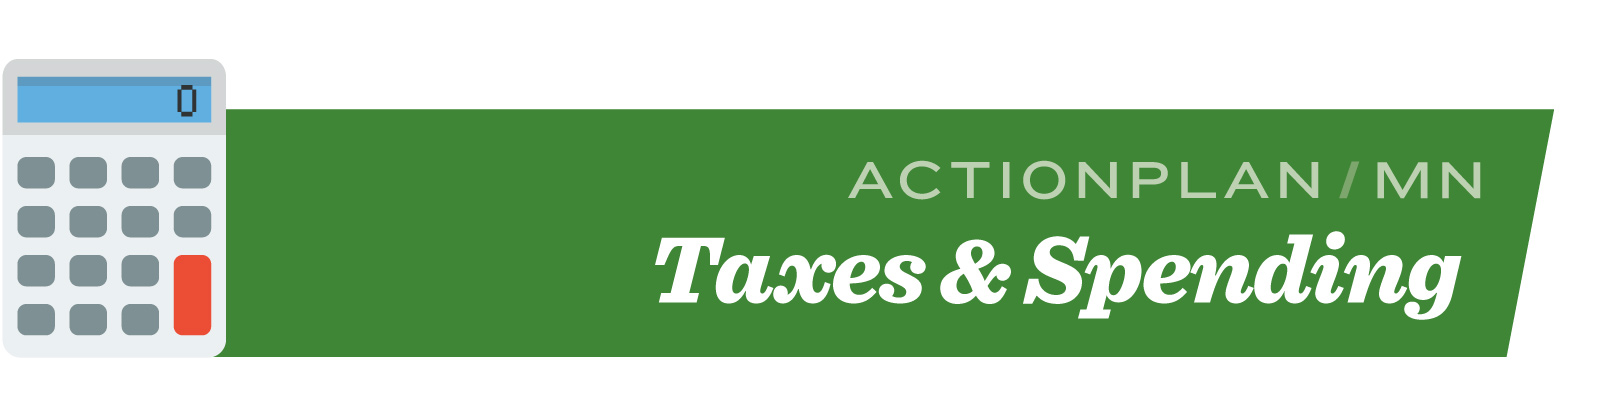 ActionPlanMN-2-Taxes.jpg